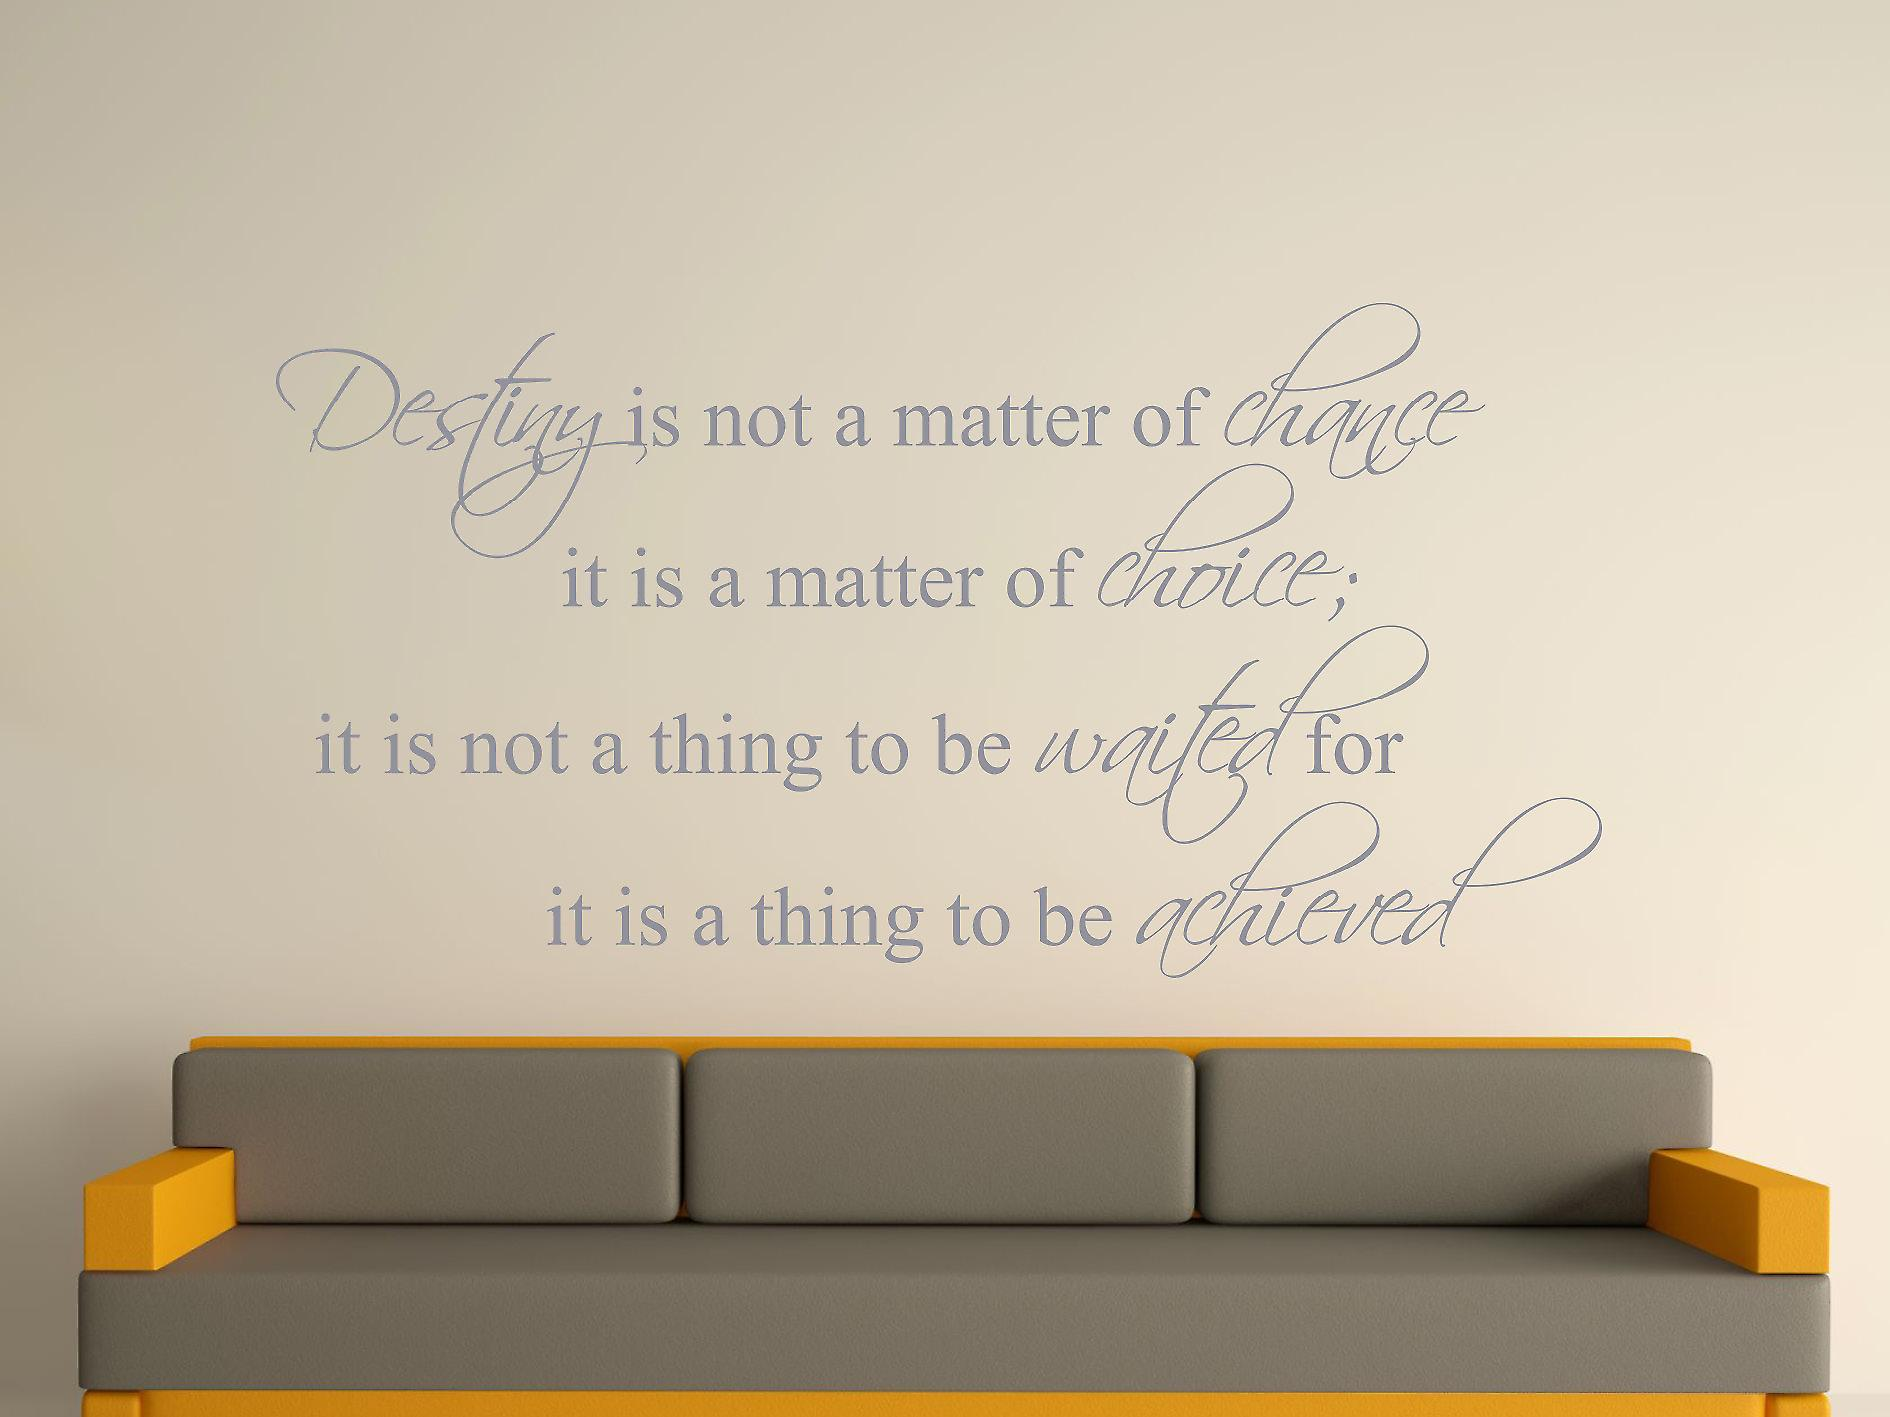 Destiny Is Not A Matter of Chance Wall Art Sticker - Silver